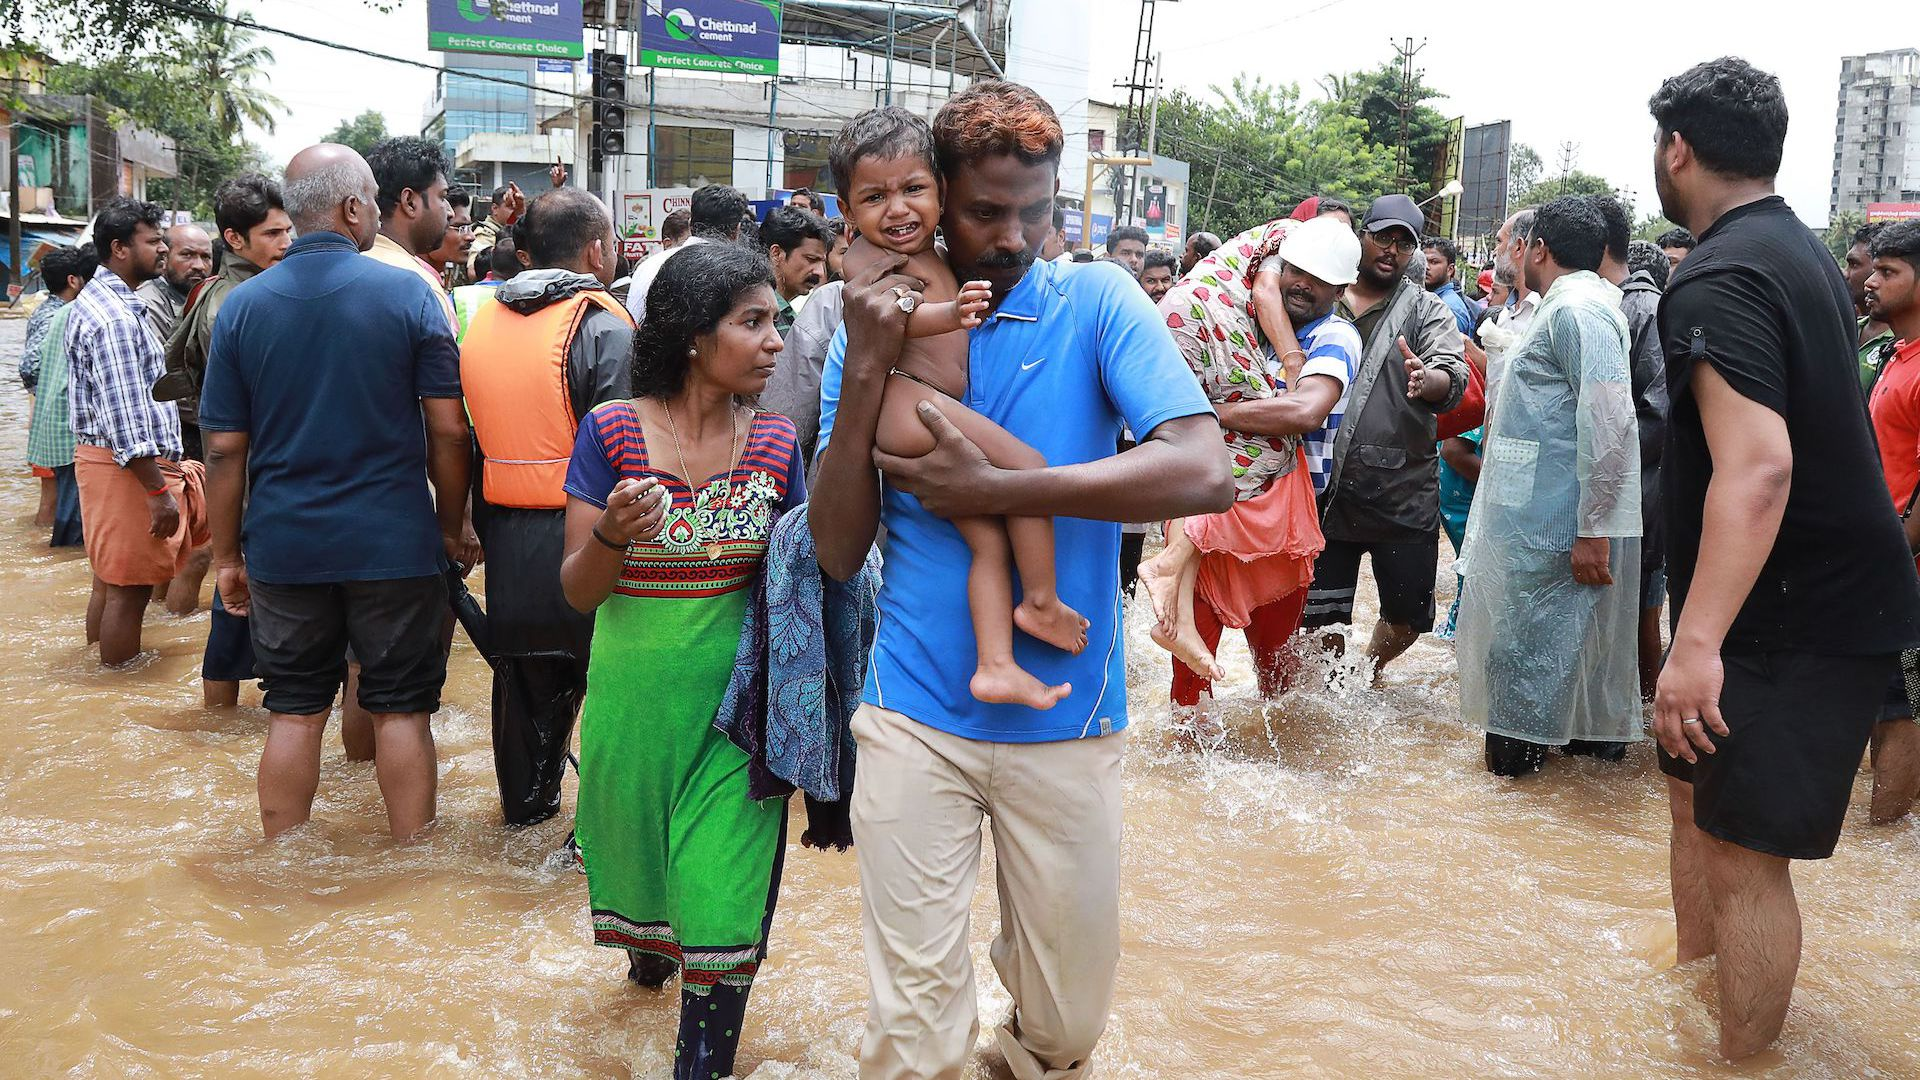 Indian volunteers and rescue personal evacuate local residents in a residential area at Aluva in Ernakulam district, in the Indian state of Kerala, on August 17, 2018.